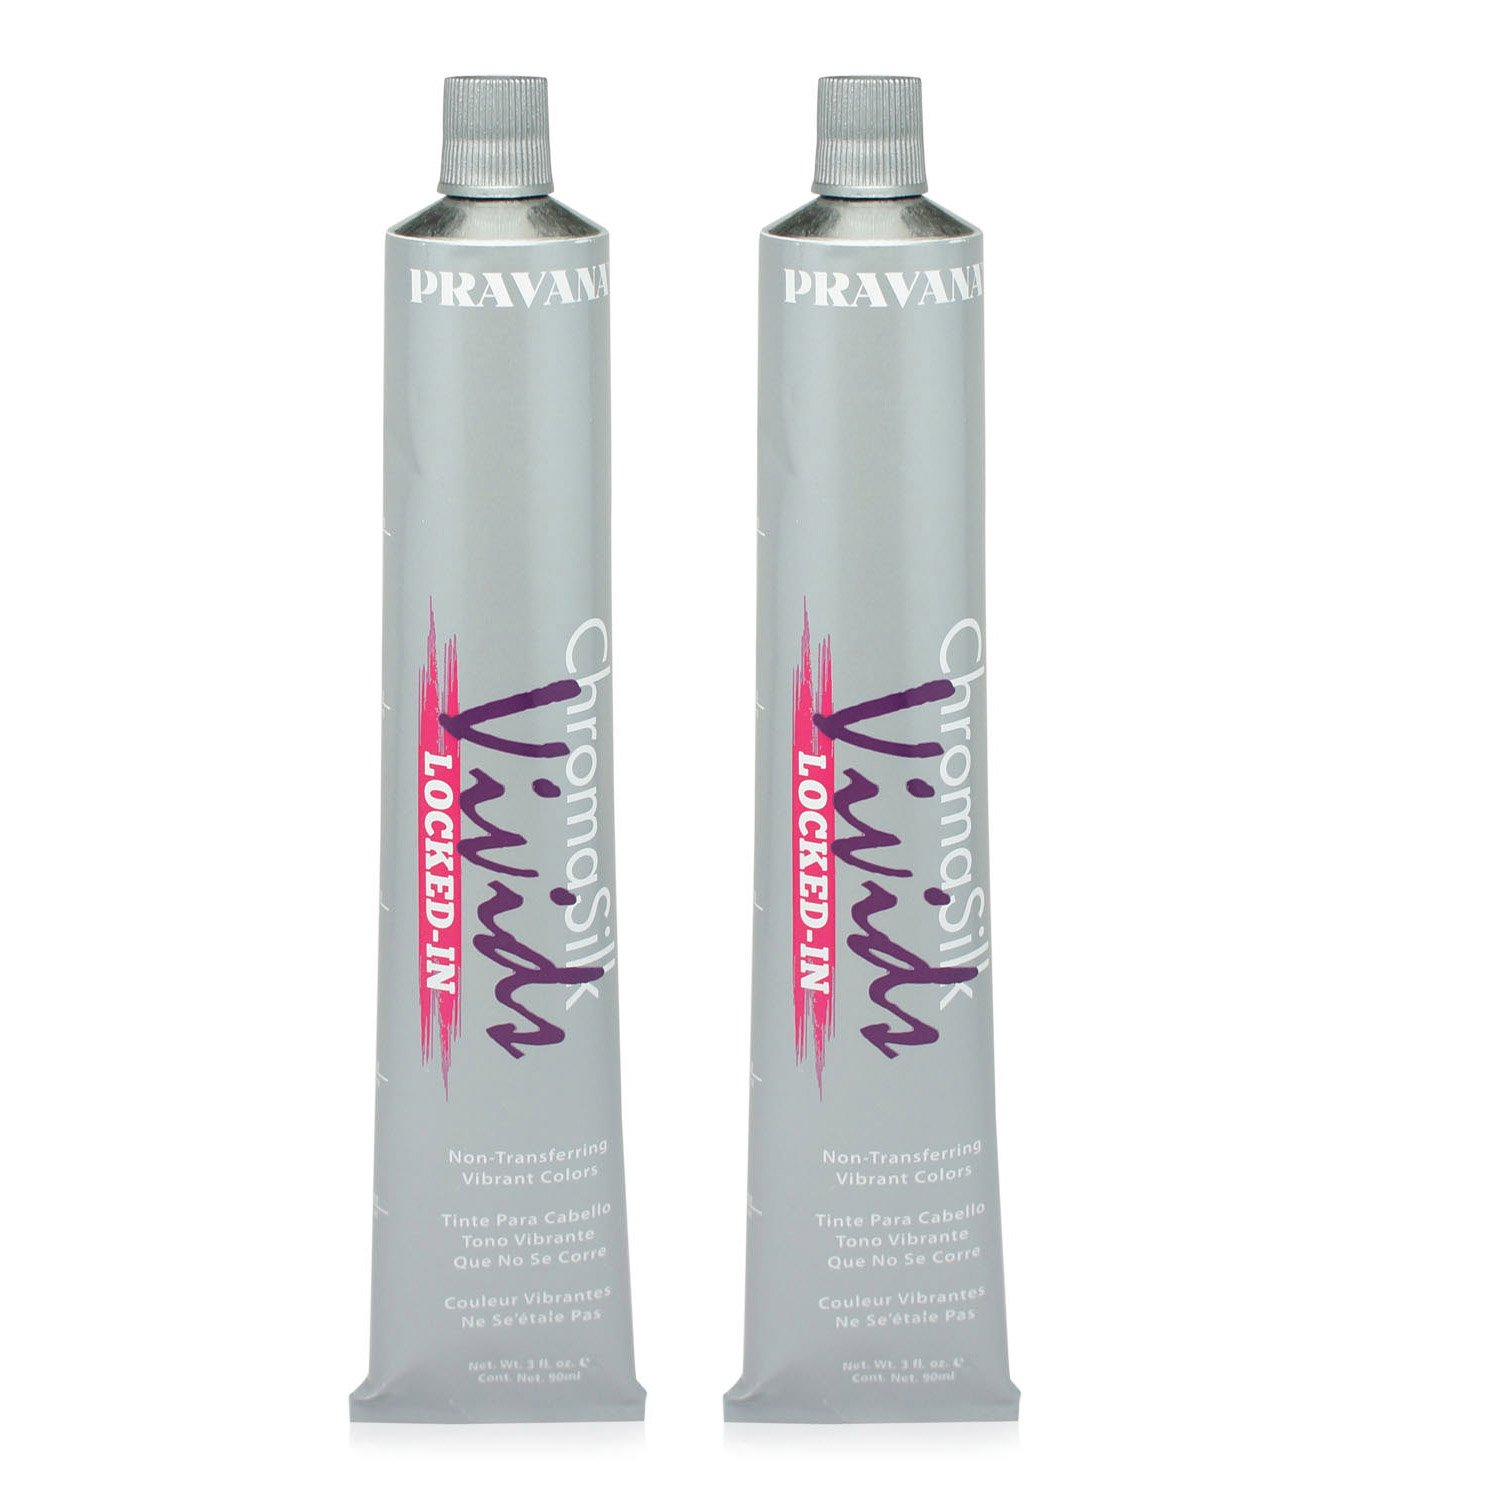 Pravana ChromaSilk Vivids (Locked in Blue), 3 Fl 0z - 2 Pack by Pravana (Image #2)